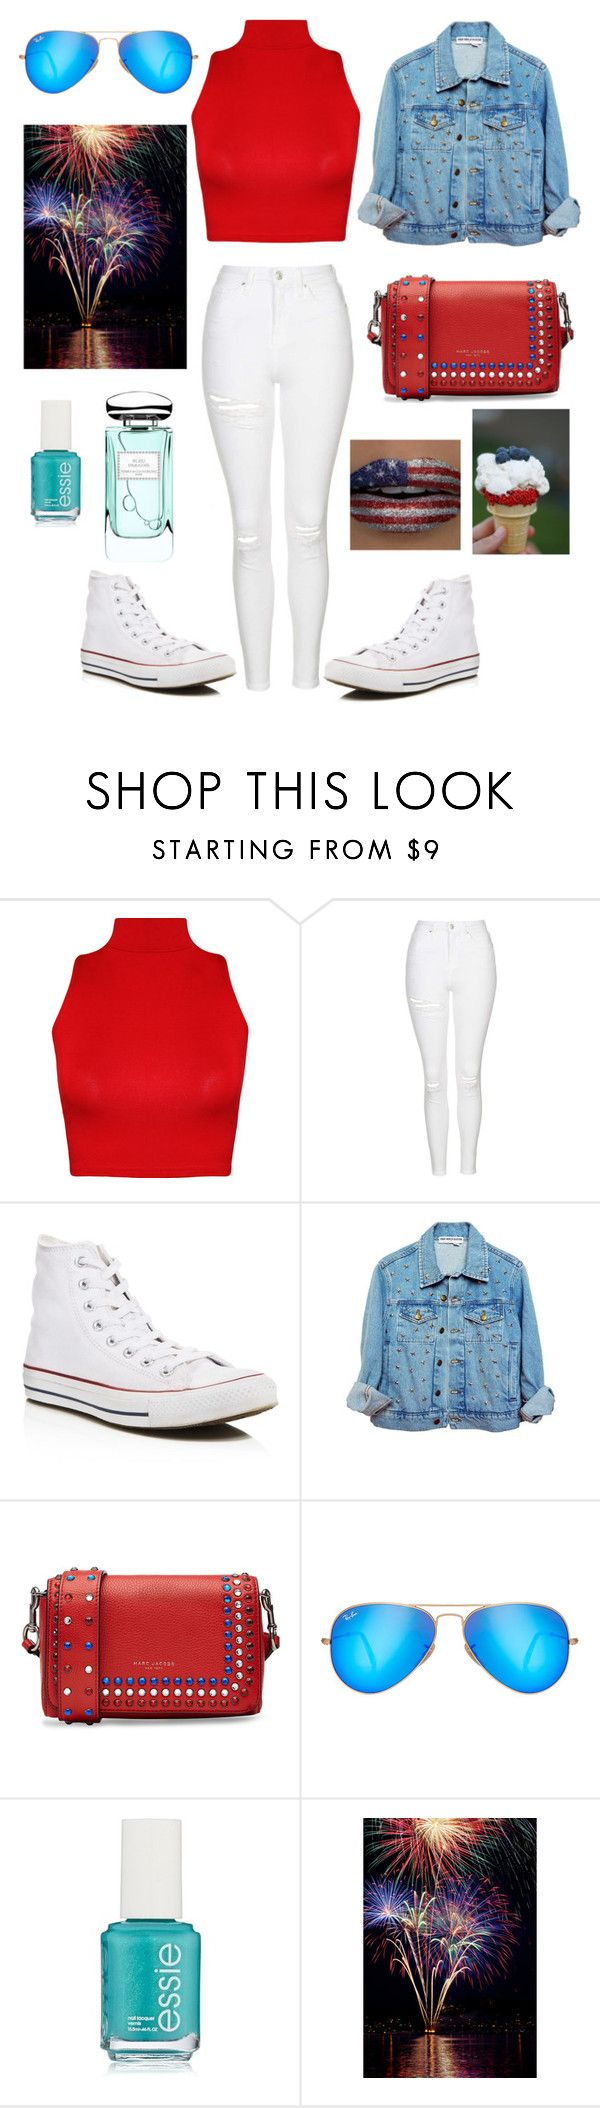 """""""4th of July barbecue outfit """" by girlonfleek8 ❤ liked on Polyvore featuring WearAll, Topshop, Converse, Marc Jacobs, Ray-Ban, Essie, By Terry, redwhiteandblue and july4th"""